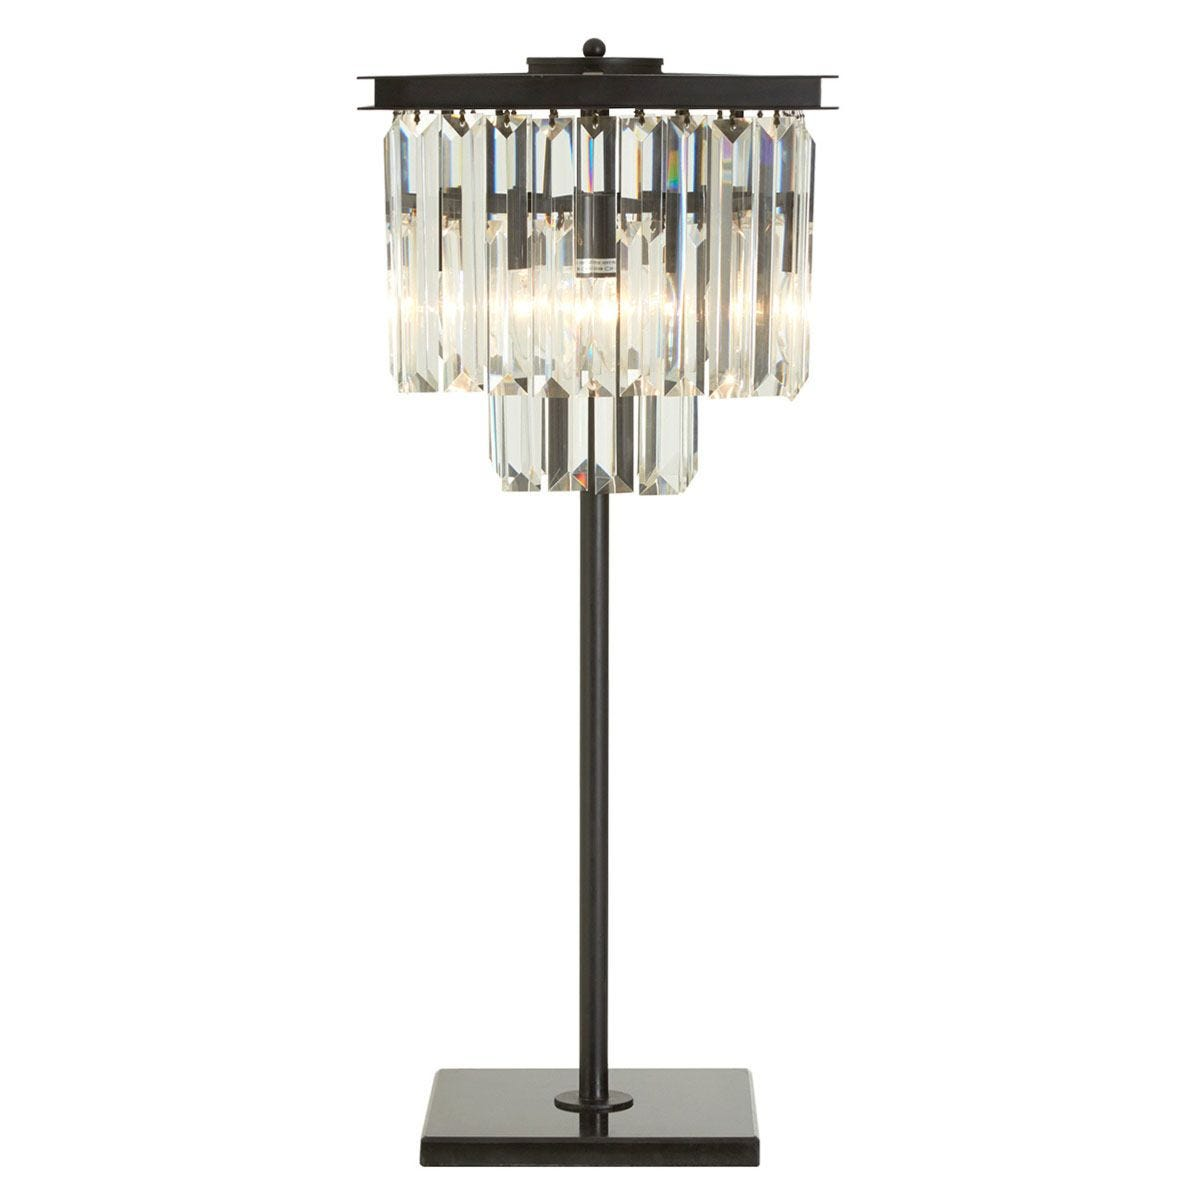 Premier Housewares Kensington Townhouse Table Lamp in Iron with Crystals - Antique Black Finish